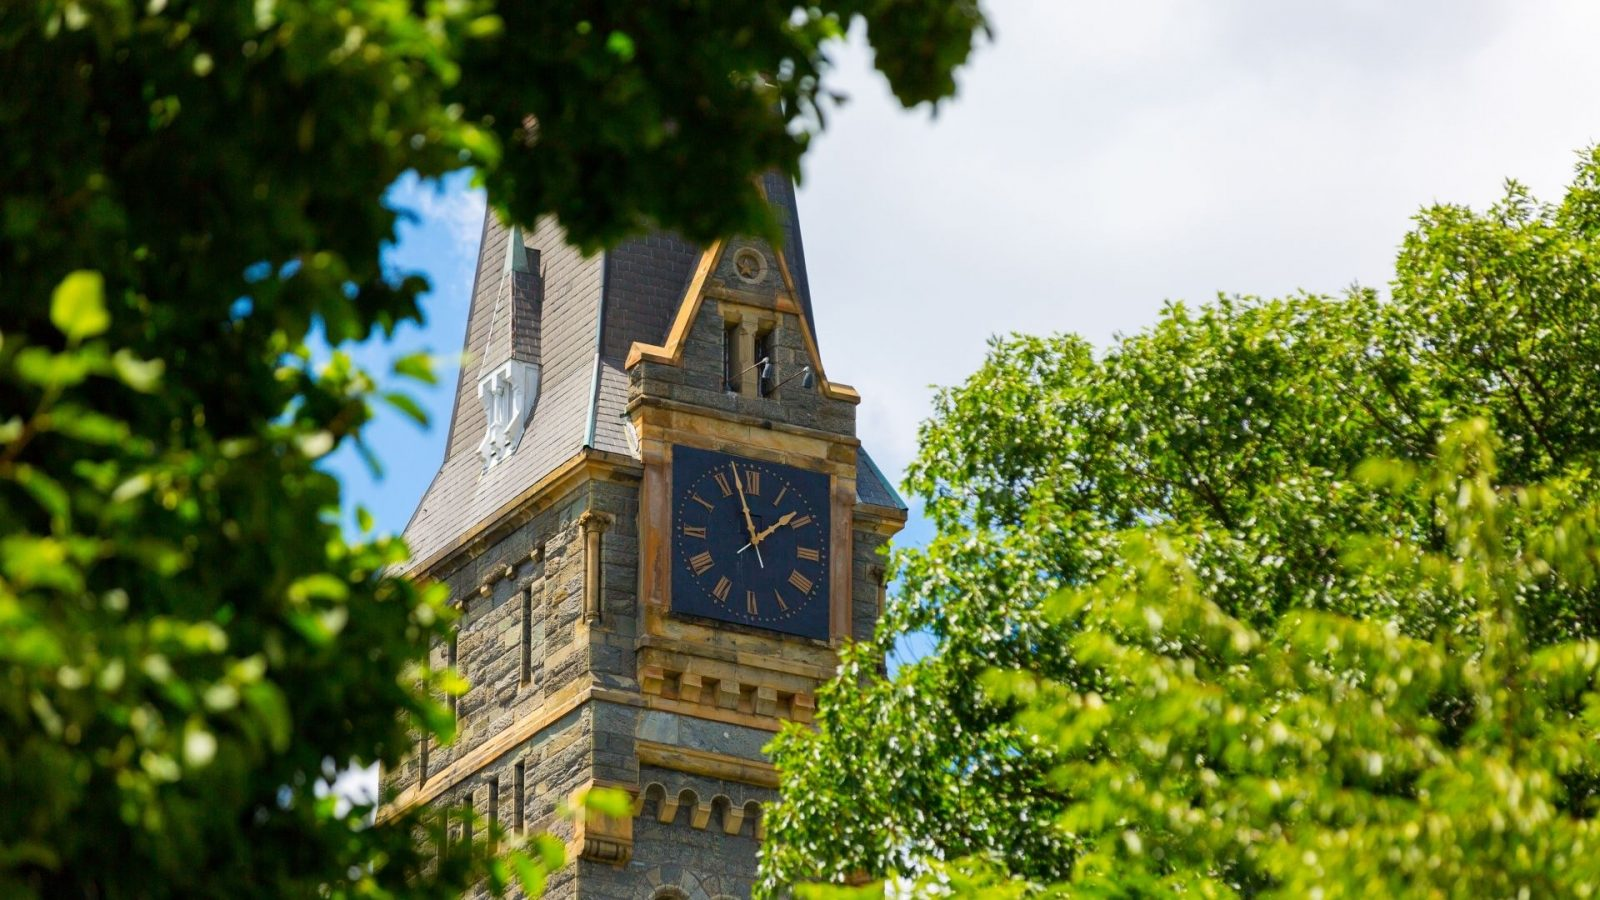 Photo of clocktower at Georgetown University